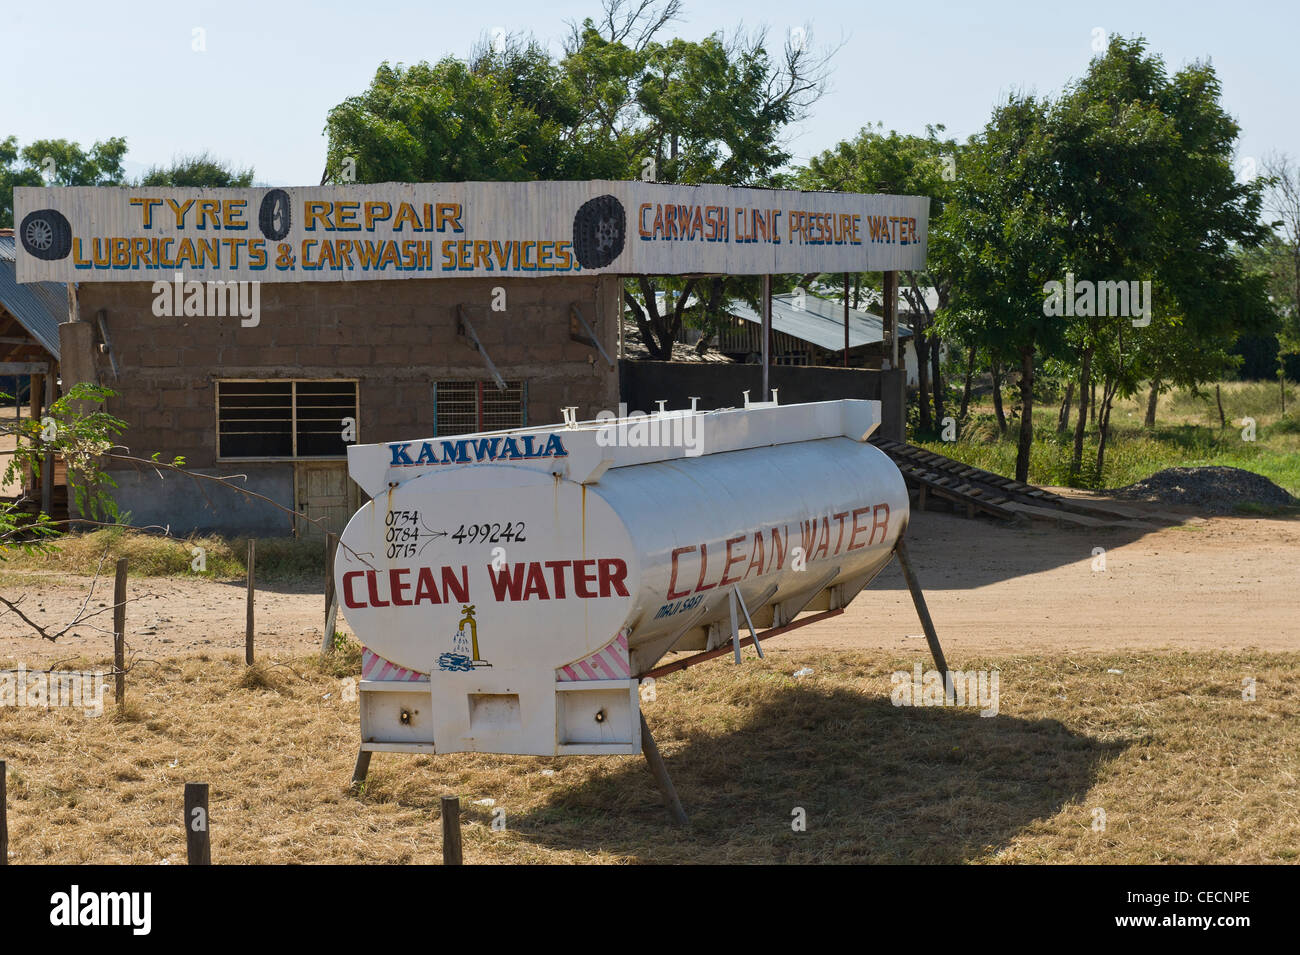 Old fuel tanker used to advertise the delivery of clean drinking water in Korogwe Tanzania - Stock Image